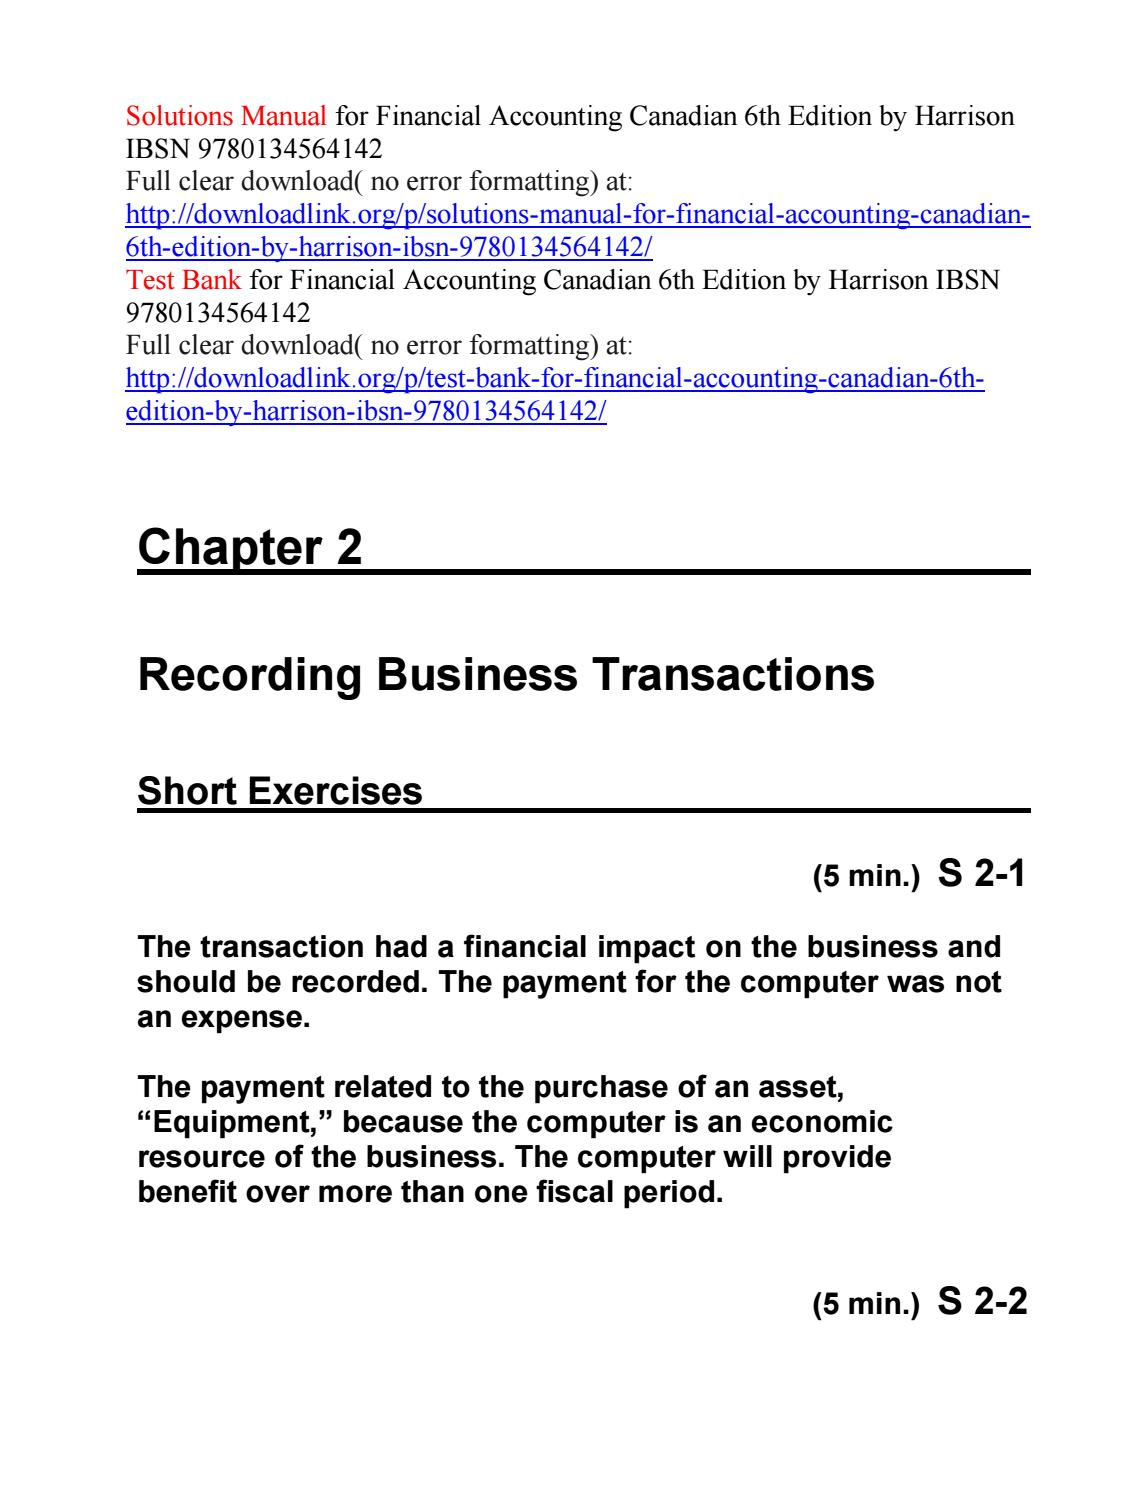 Solutions manual for financial accounting canadian 6th edition by harrison  ibsn 9780134564142 by Michael9130 - issuu